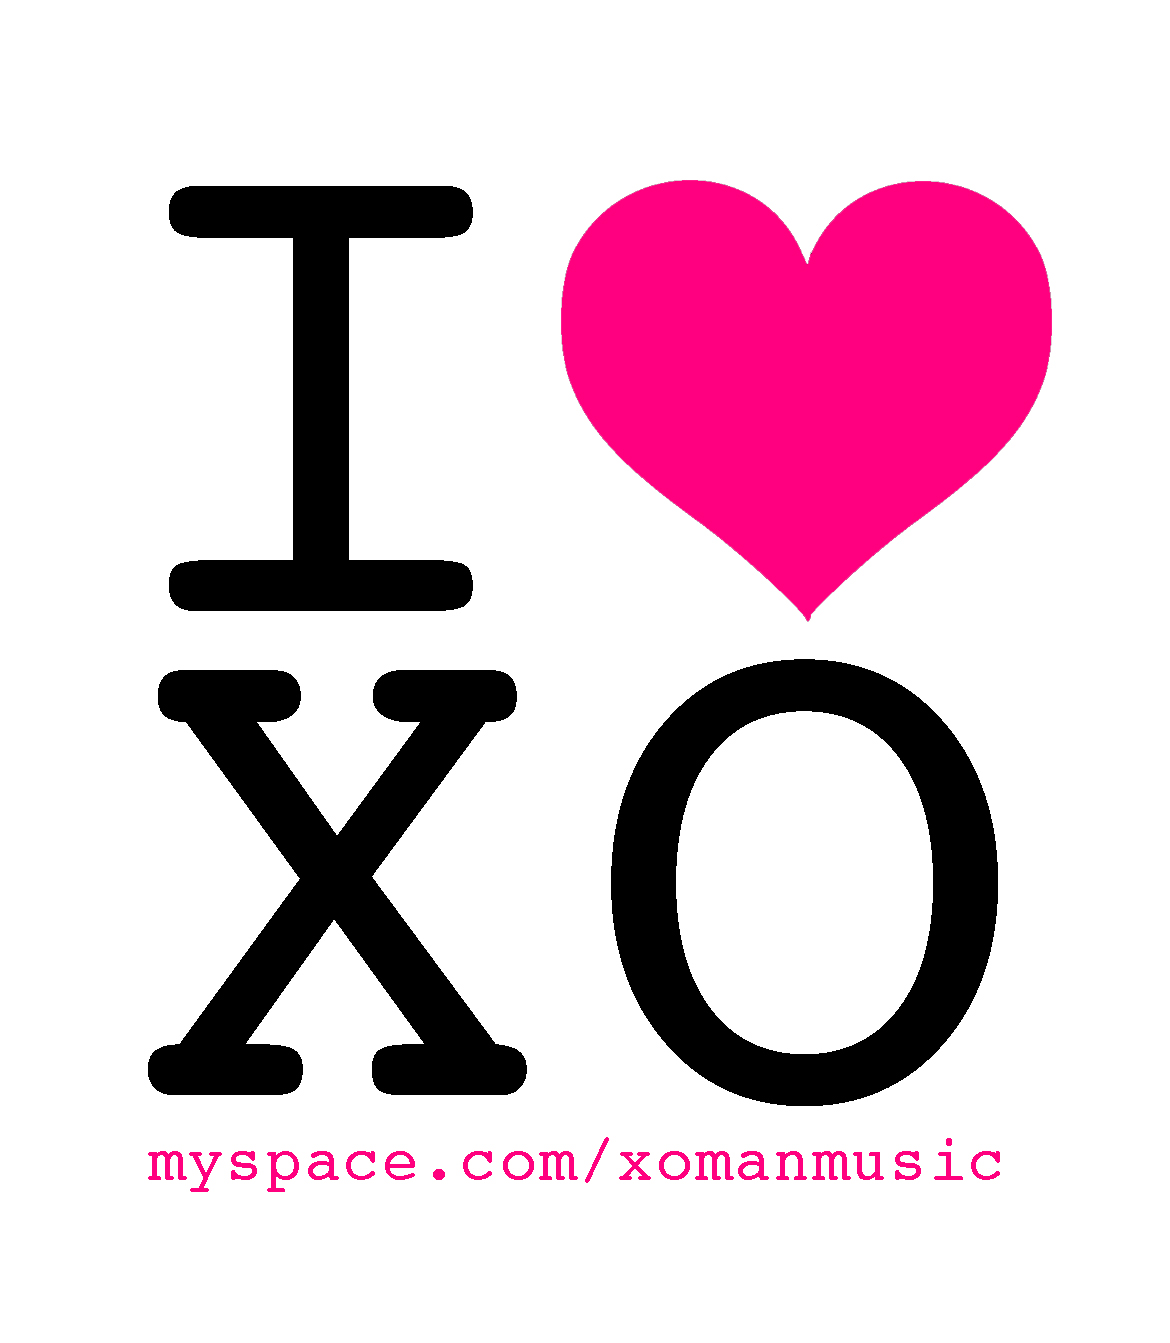 Xo man raw news free content for bloggers page 4 leave a comment biocorpaavc Image collections